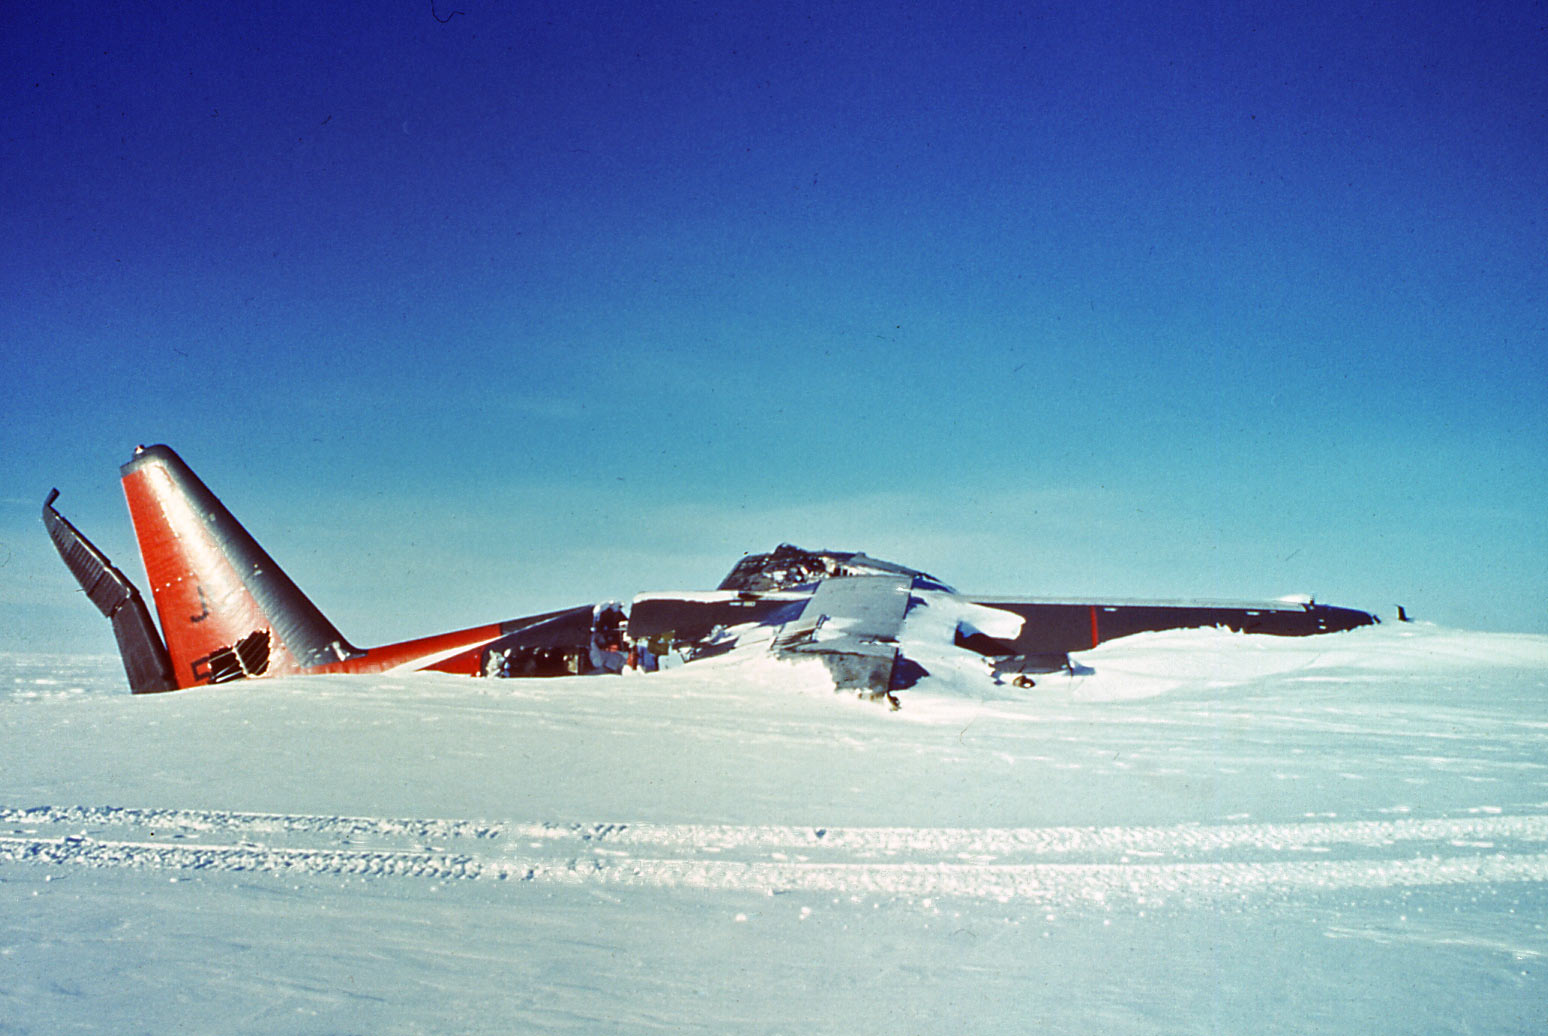 That Crashed Plane At The End Of Skiway Aircraft Beacon 917